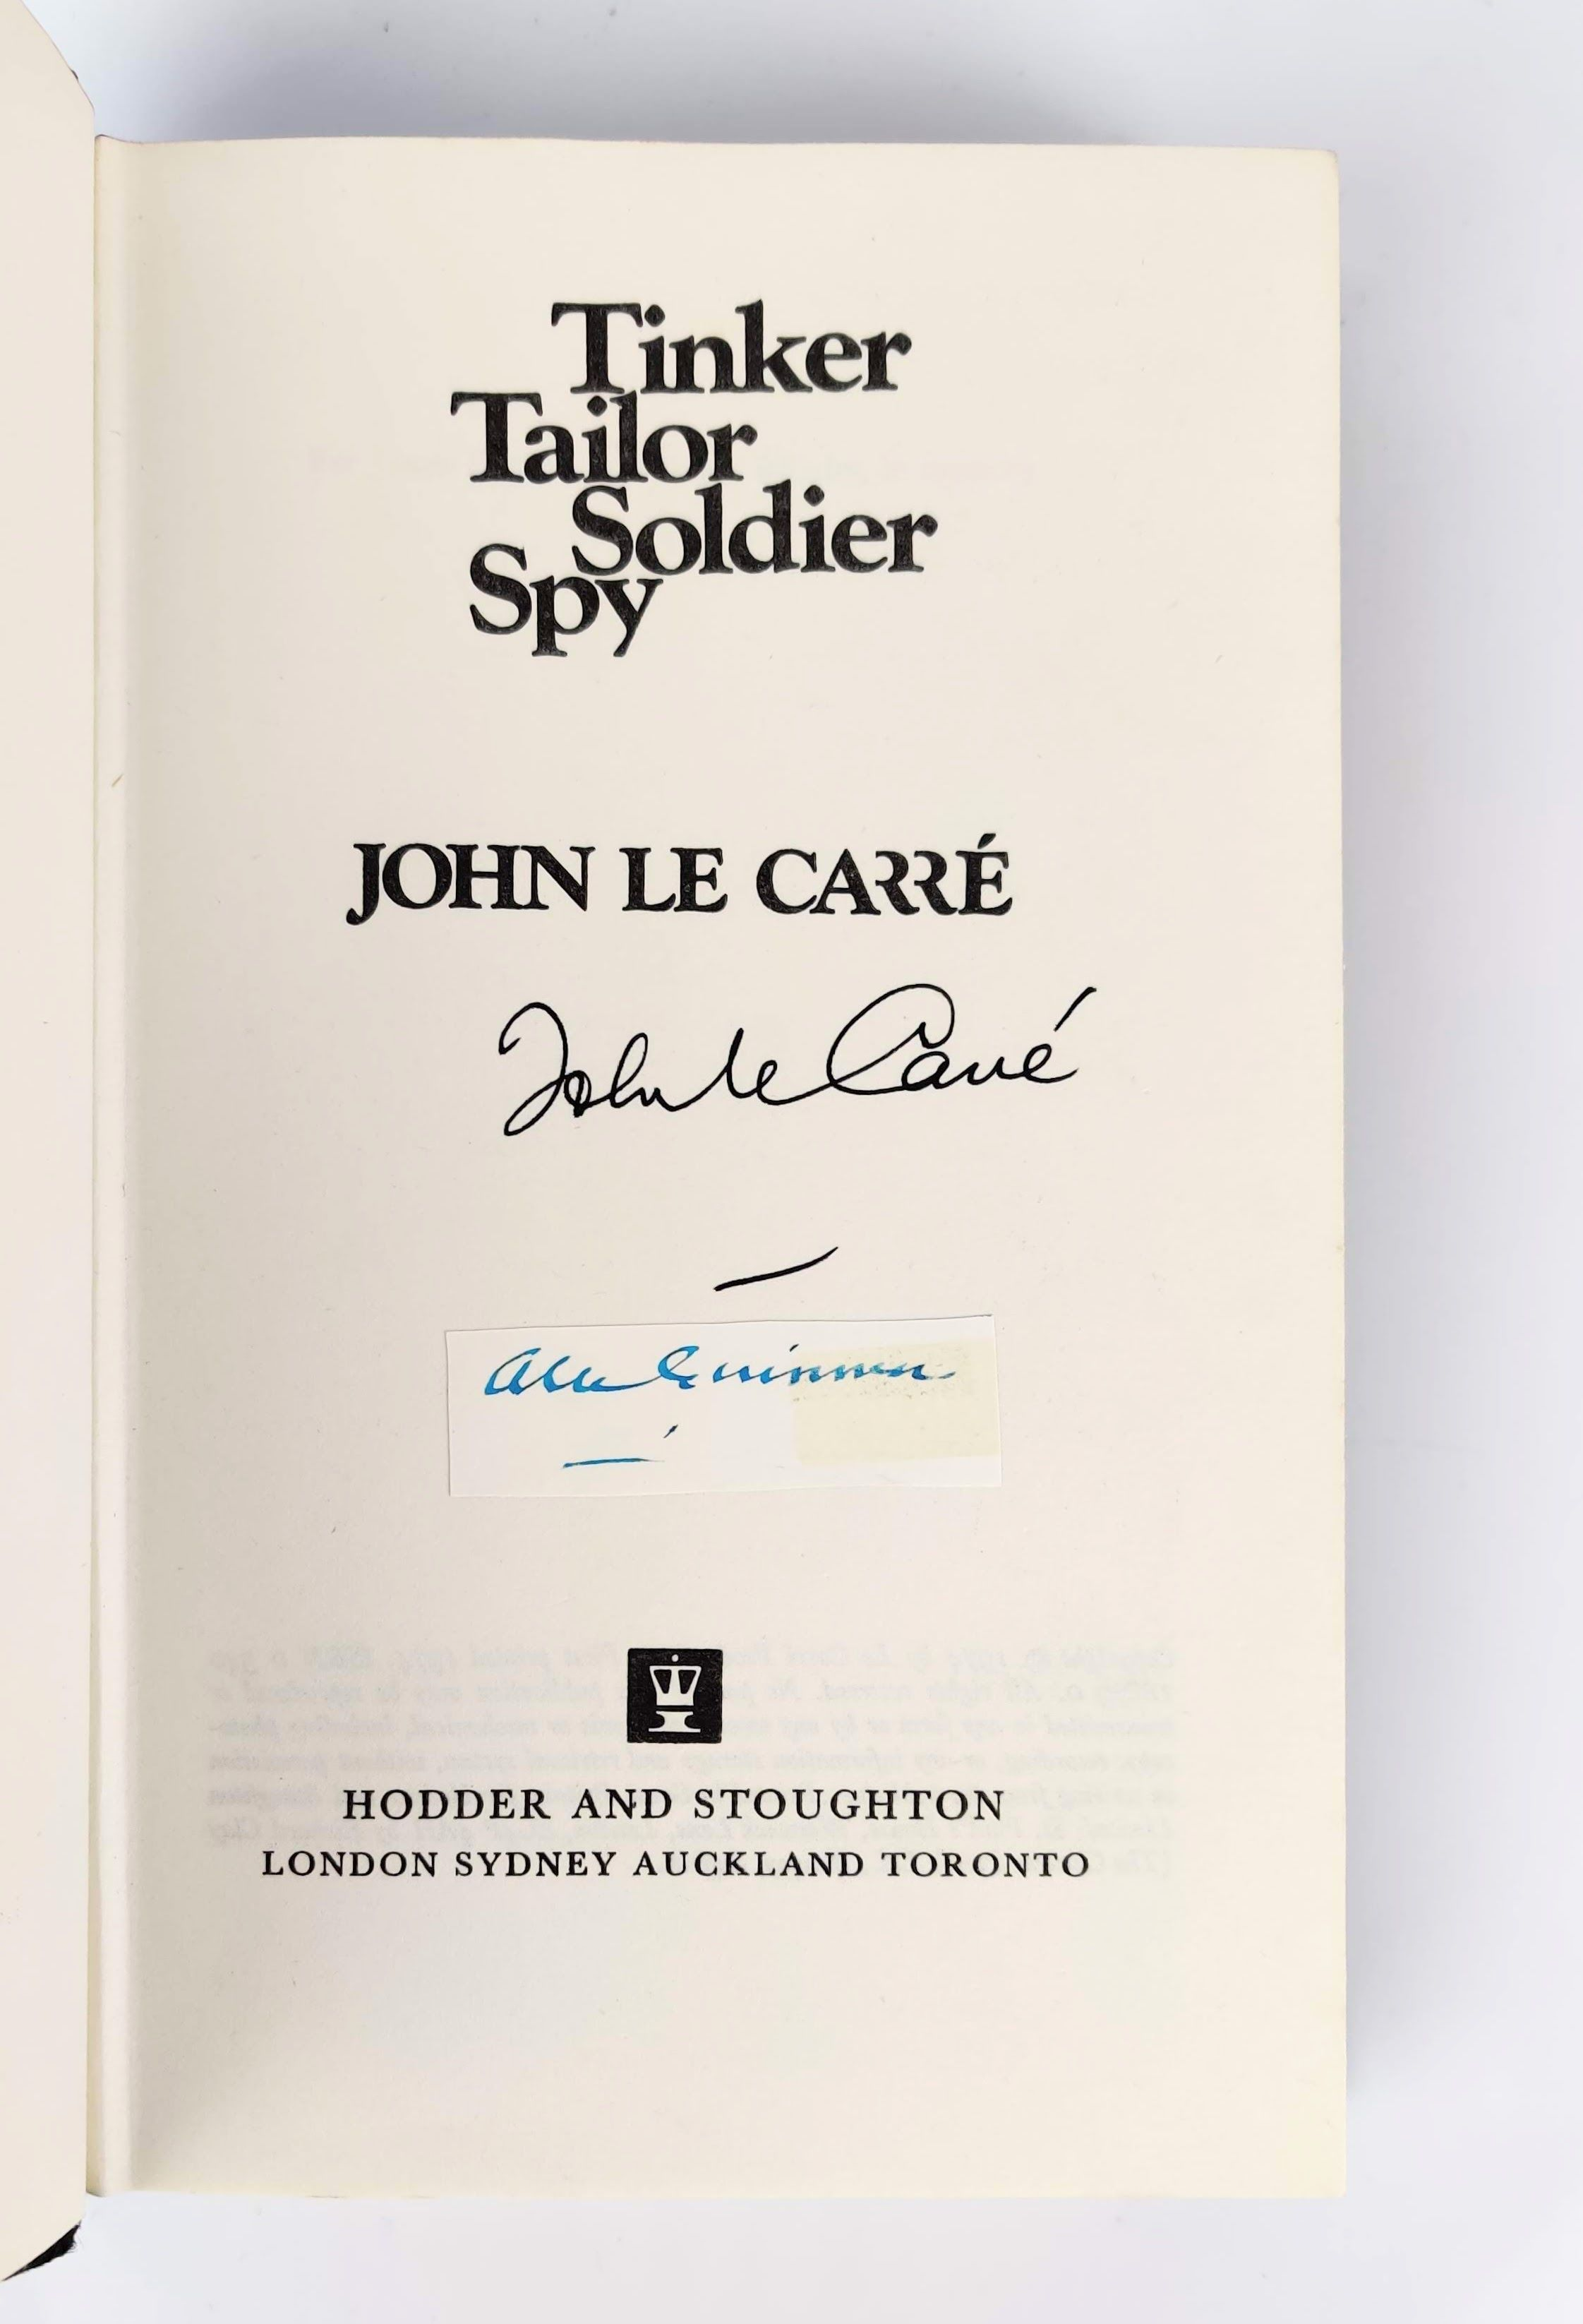 The Karla Trilogy: Tinker Tailor Soldier Spy, The Honourable Schoolboy, Smiley's People - All Signed by the Author (photo 7)